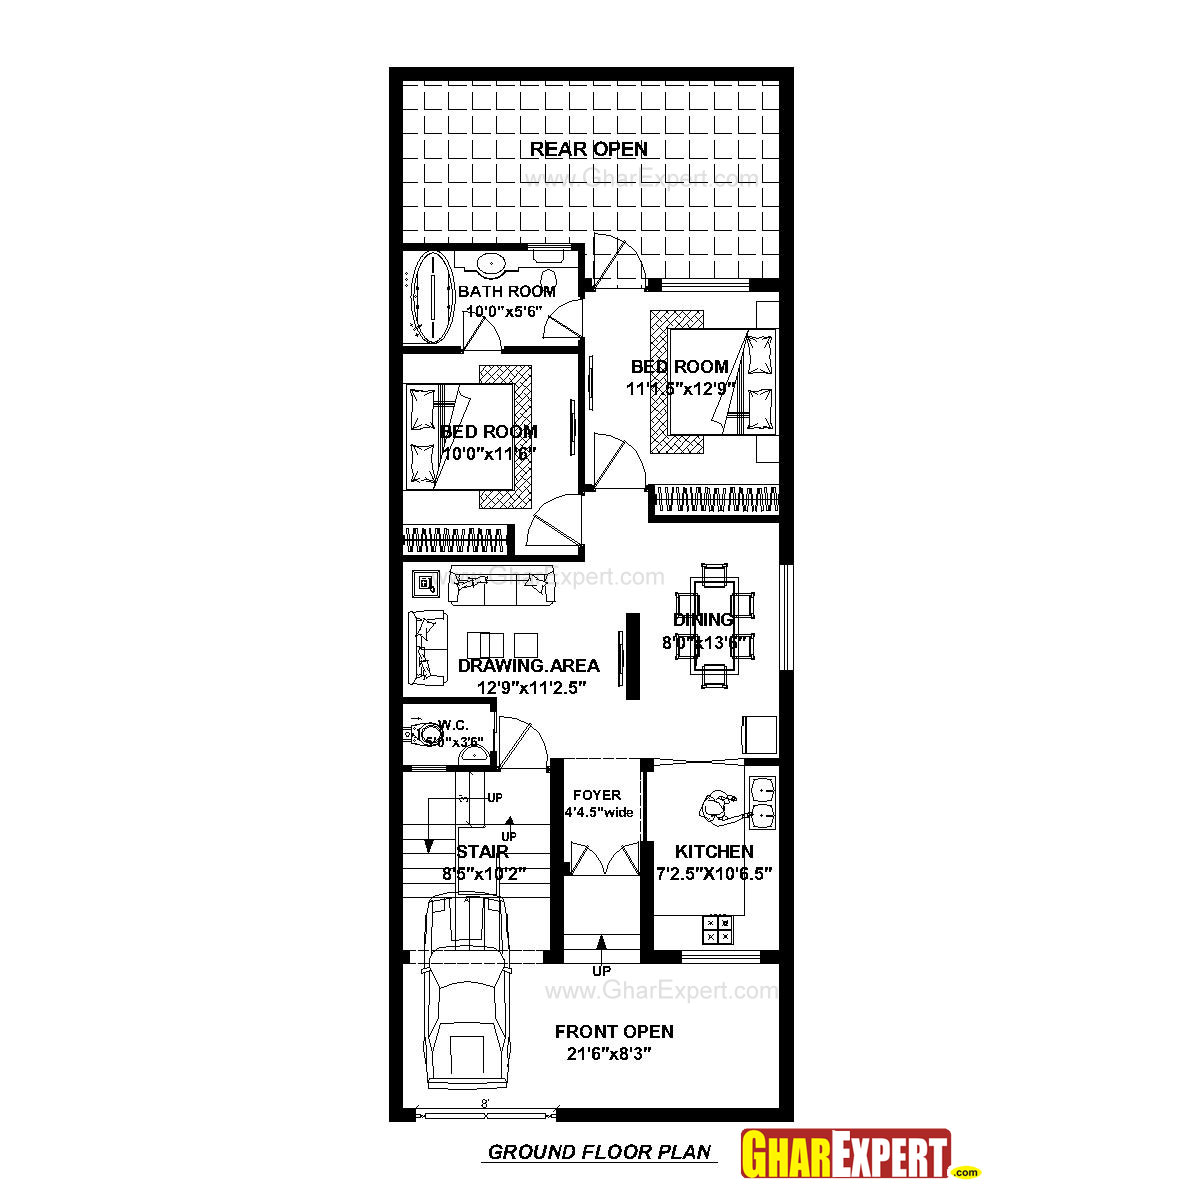 House Plan for 23 Feet by 60 Feet plot (Plot Size 153